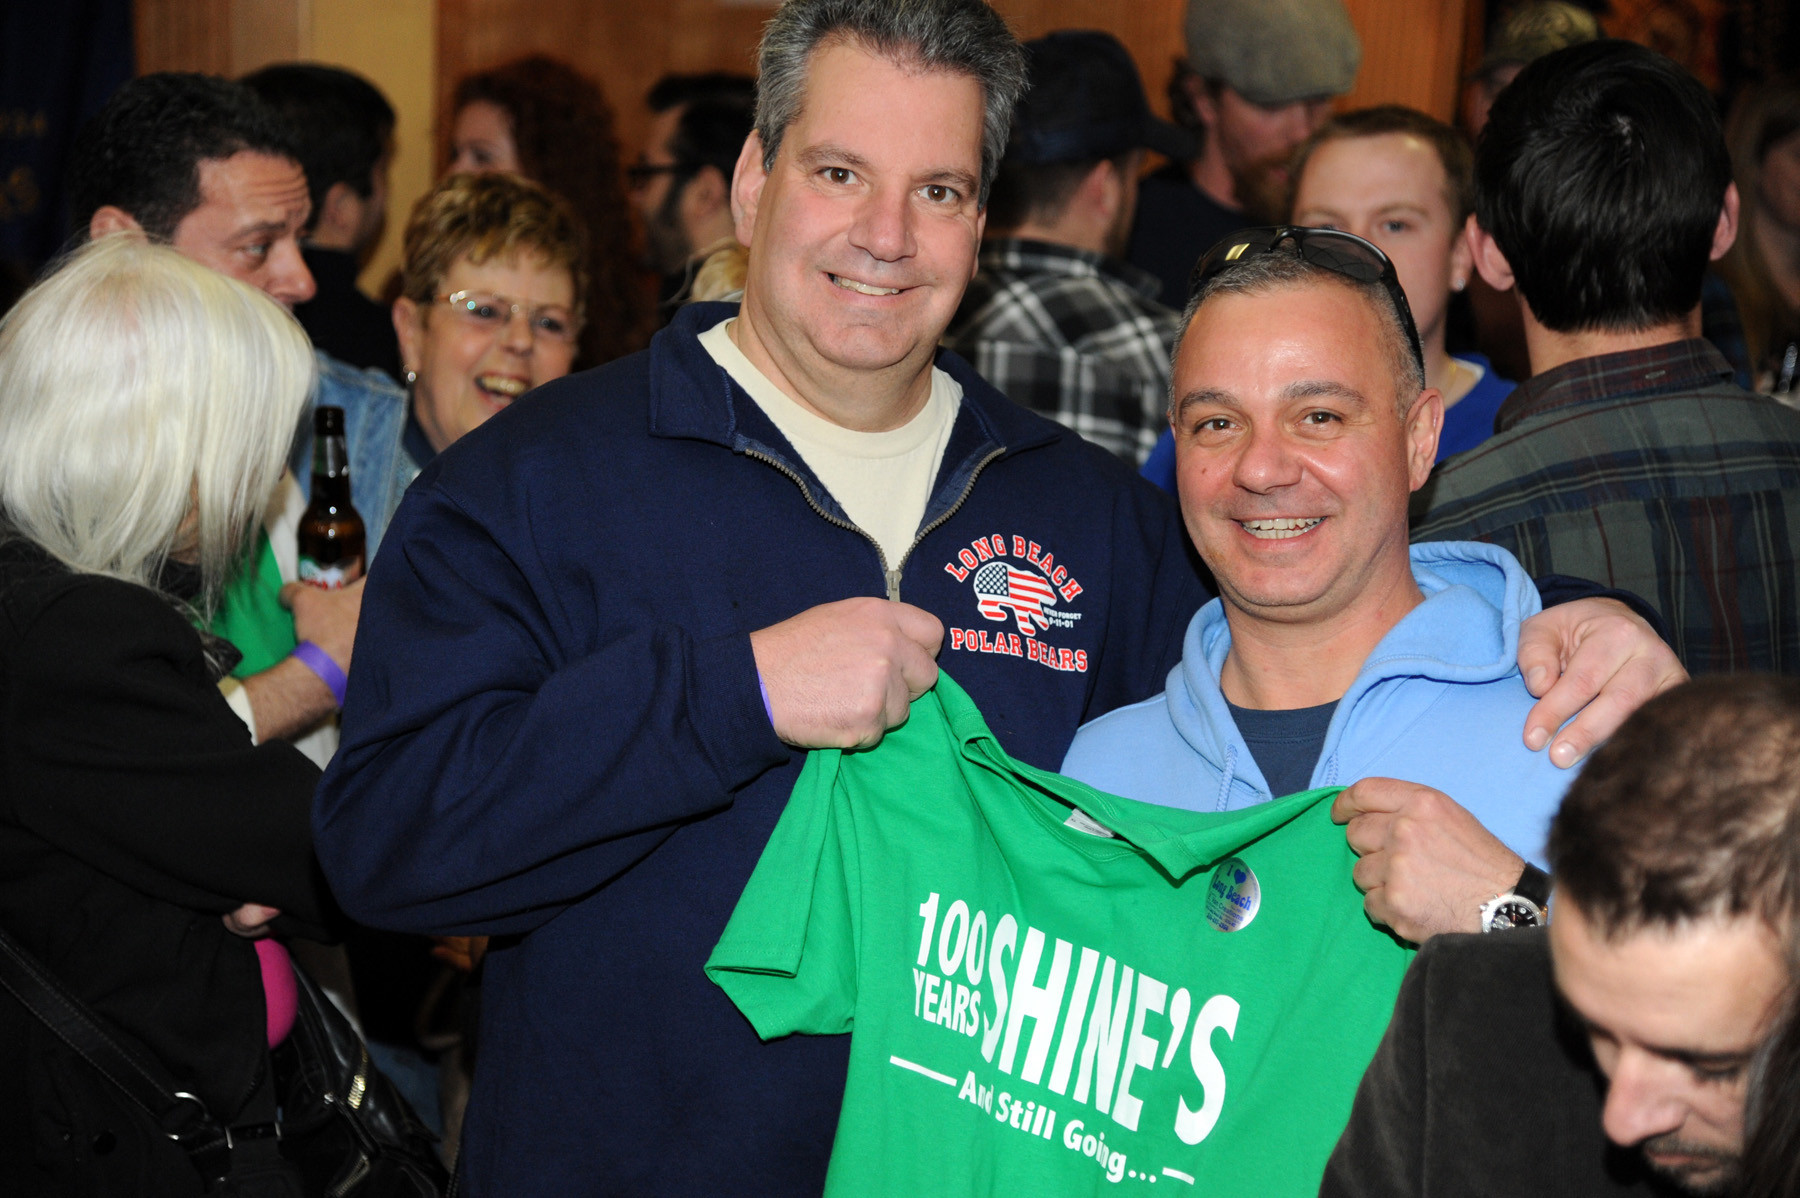 Bill Holtmeyer and Paul Montasano showed their love for Shine�s with a signature T-shirt.